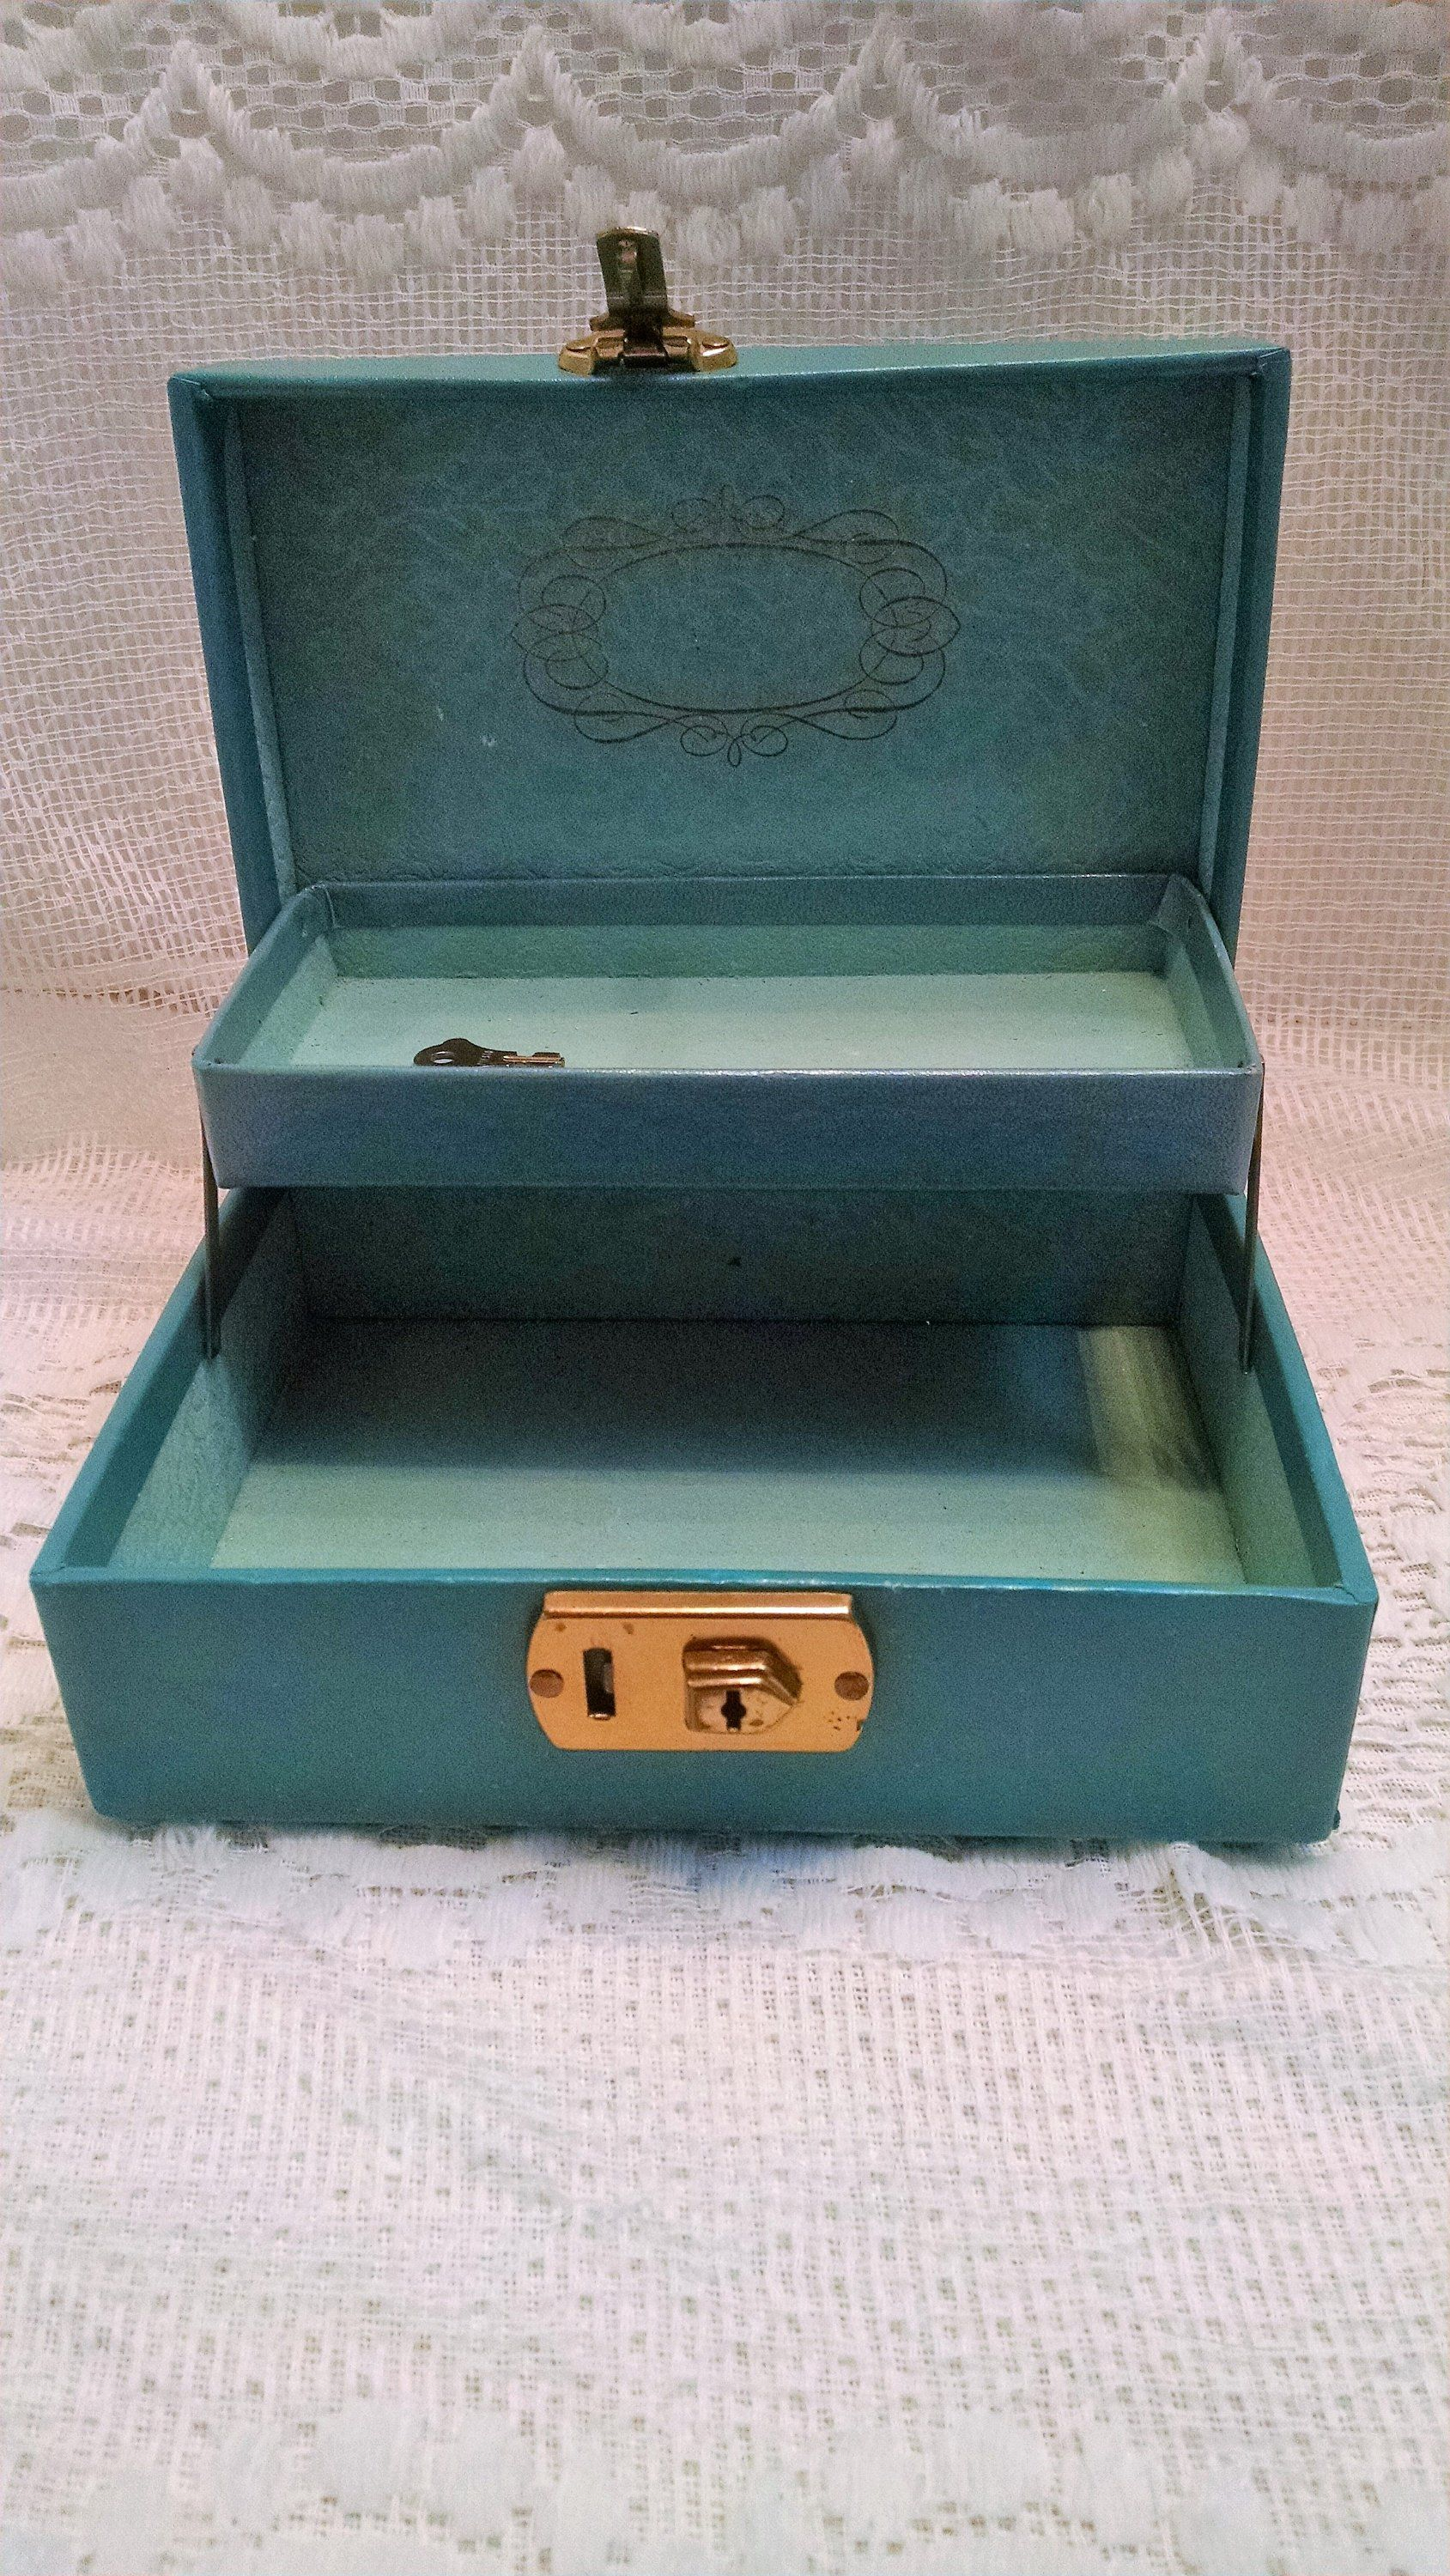 Sweet Vintage Jewelry Box Small Teal Turquoise Exterior Flocked Aqua Interior Gold Trim With Lock And Key Sh Vintage Jewelry Box Retro Decor Cottage Chic Decor